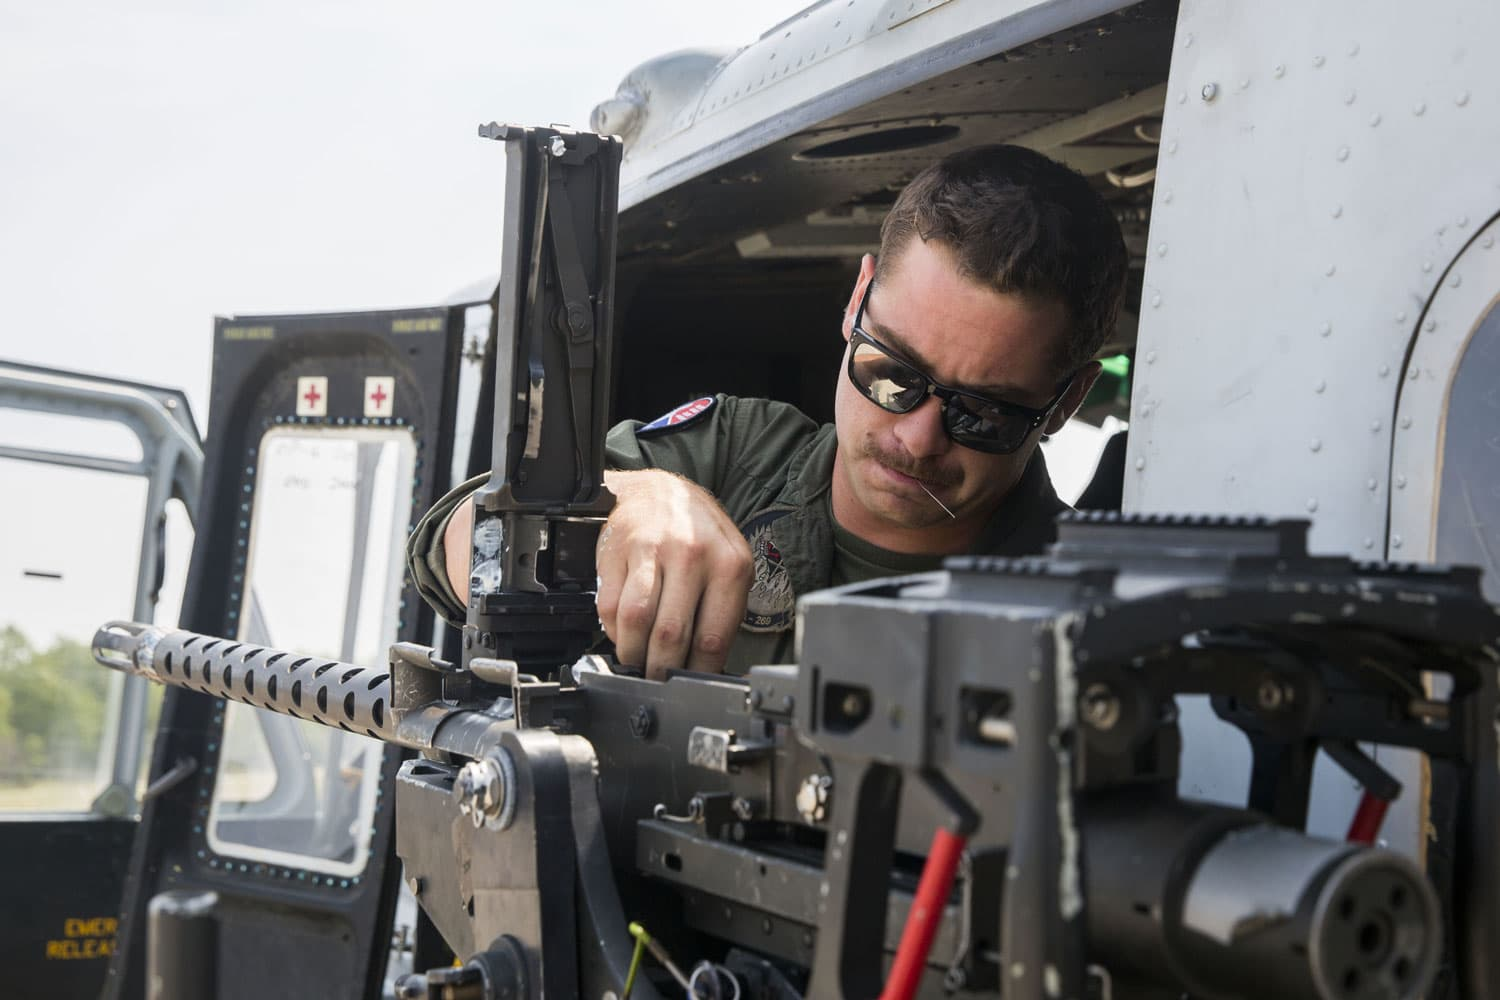 U.S. Marine Corps Cpl. Matthew T. Glora, a UH-1Y Huey crew chief with Marine Light Attack Helicopter Squadron 269, inspects a GAU-21 .50 caliber machine gun during Northern Strike at the Combat Readiness Training Center Alpena, MI.